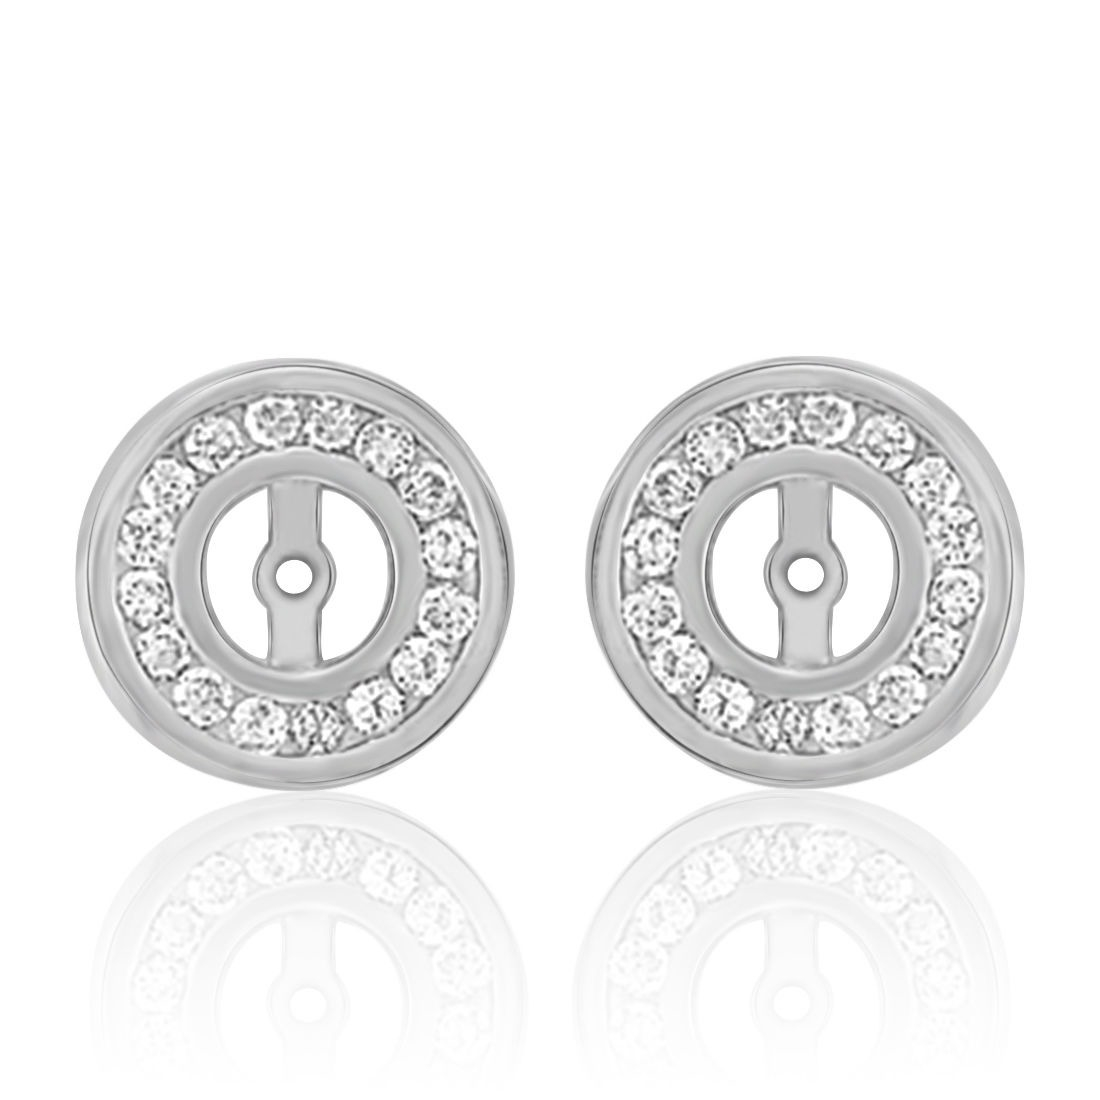 EARRING JACKETS Solid Sterling Silver Gemstone Enhancer Small Hoops,Diamond Stud Ear Jackets,Solid Silver Smooth Half Round JH24DHR2.5WSS